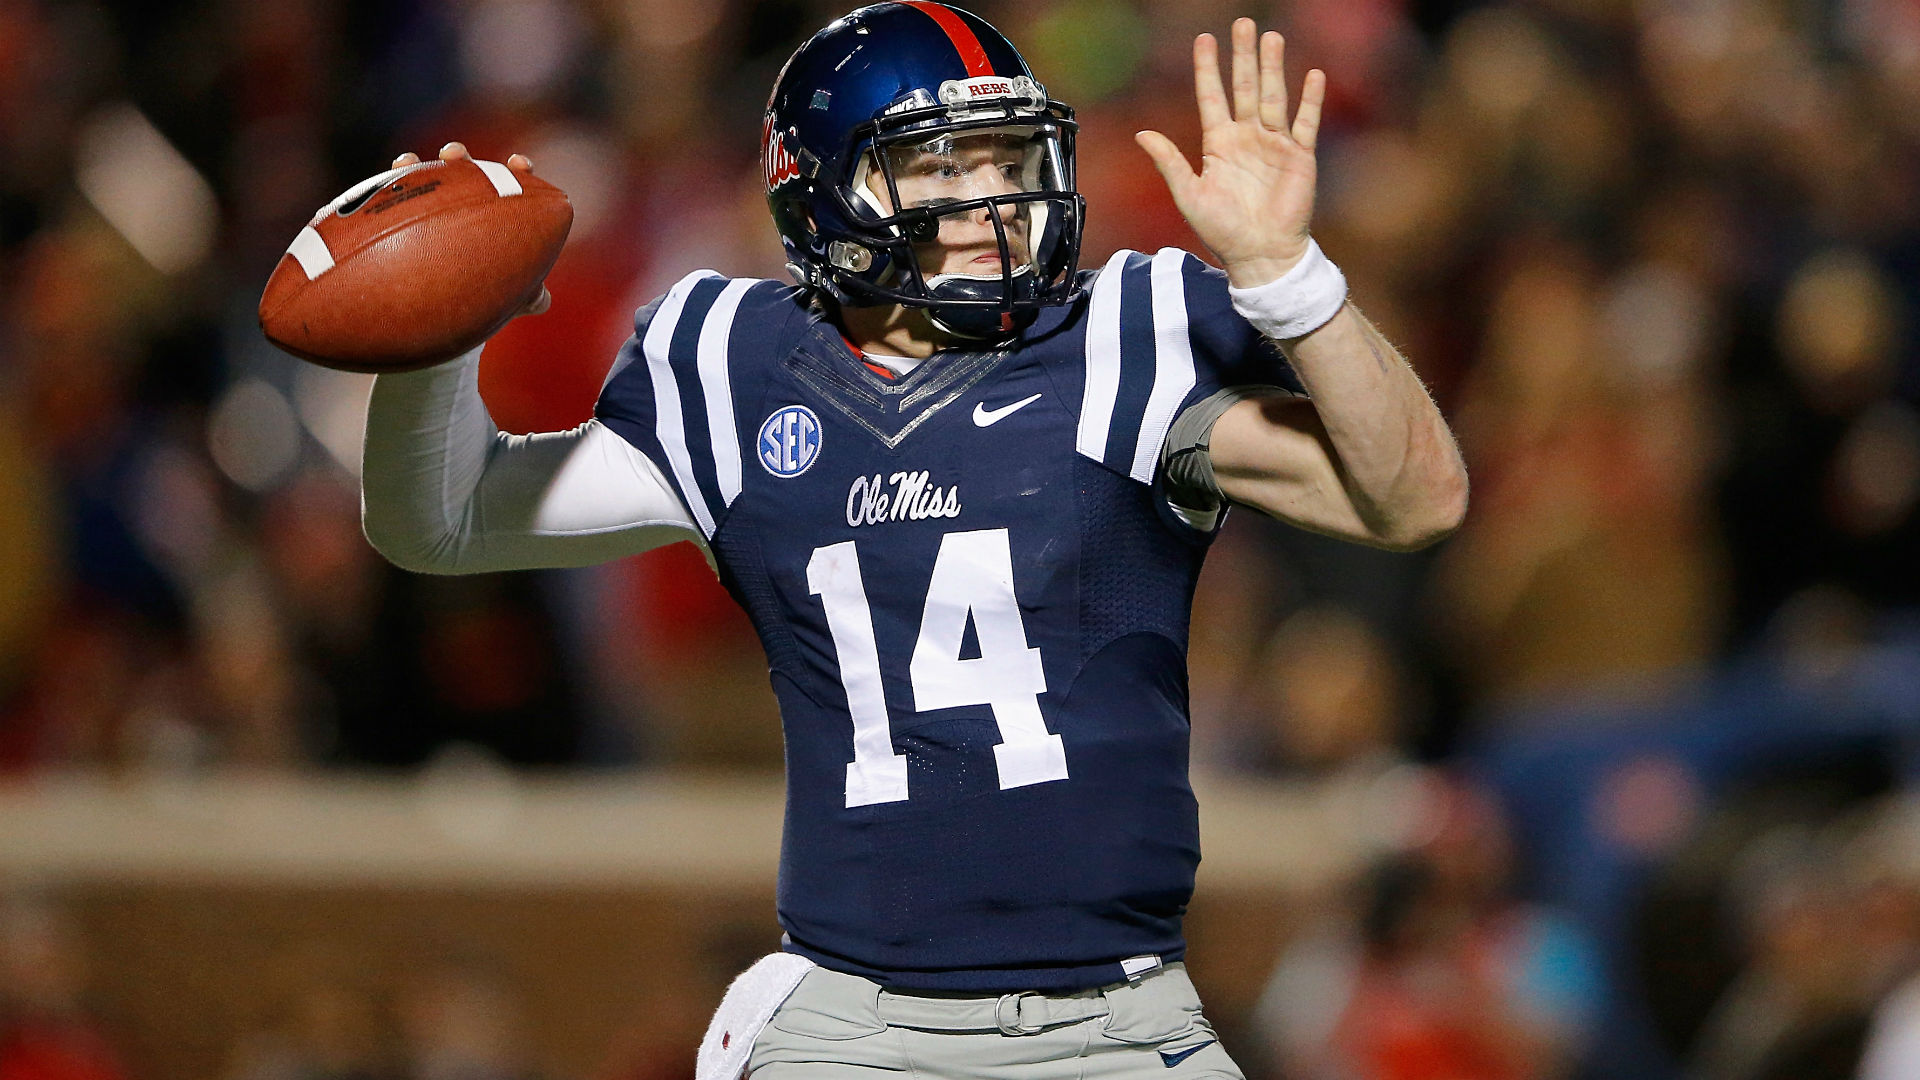 College football lines and leans – Your Week 13 betting guide